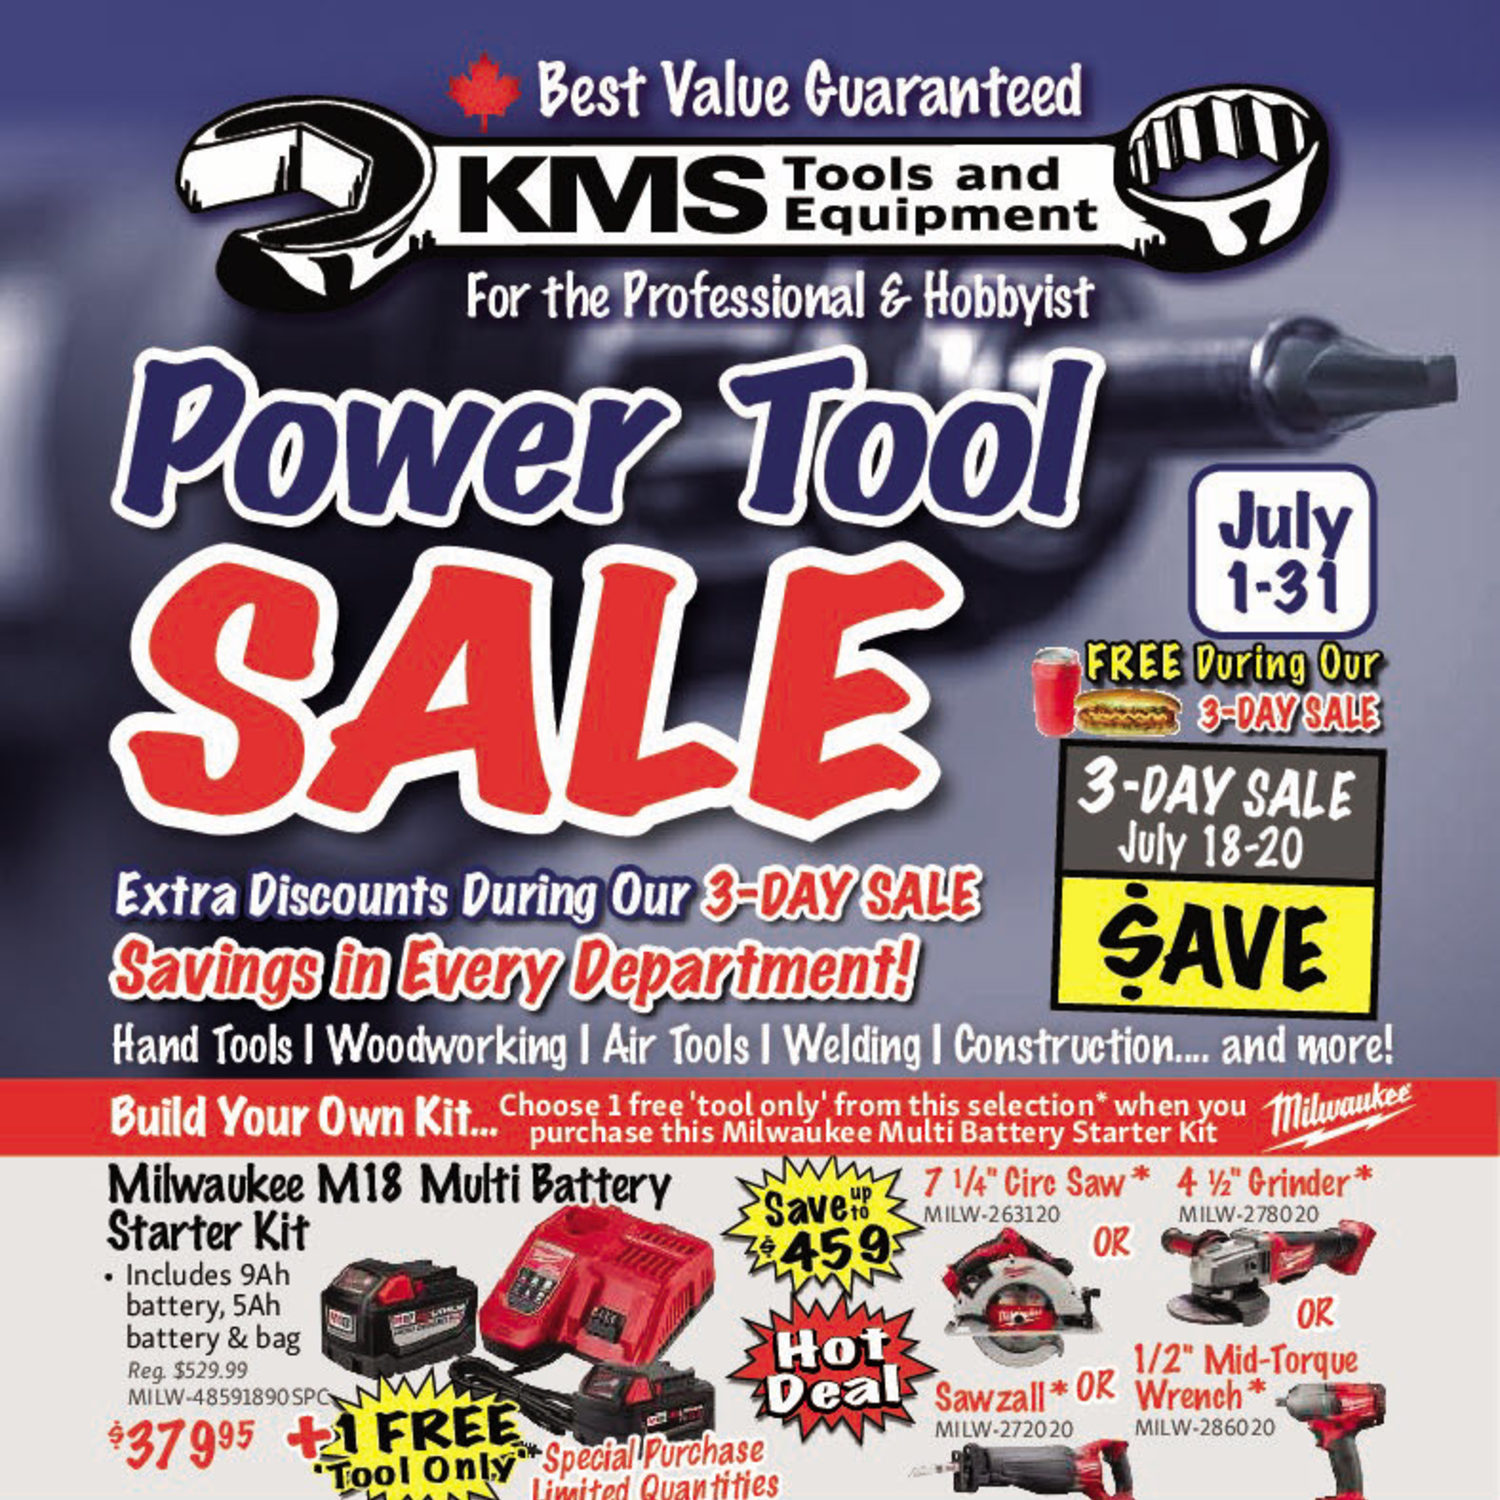 KMS Tools Weekly Flyer - Power Tool Sale - Jul 1 – 31 - RedFlagDeals com